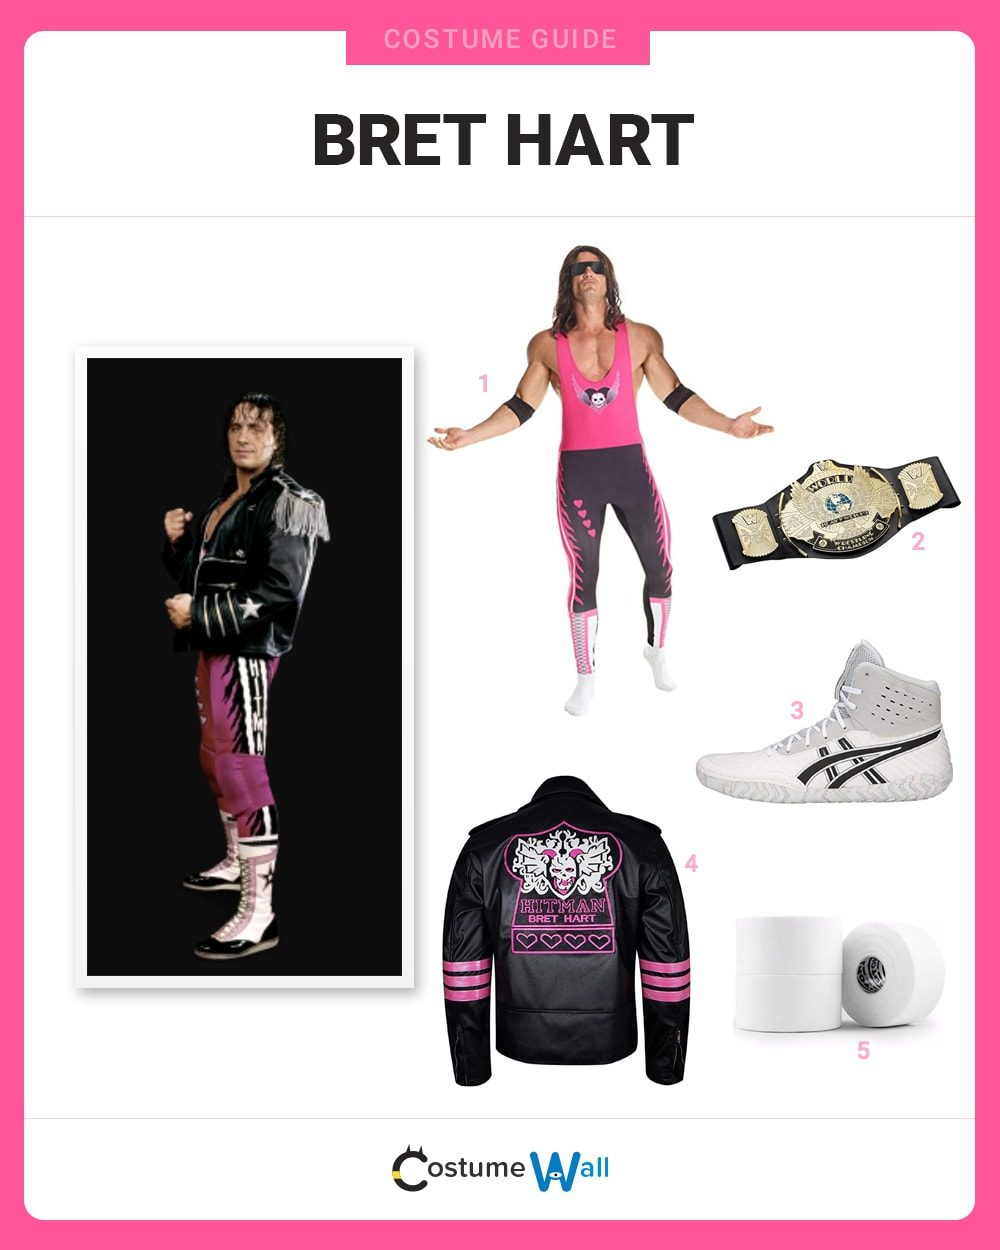 Bret Hart Costume Guide